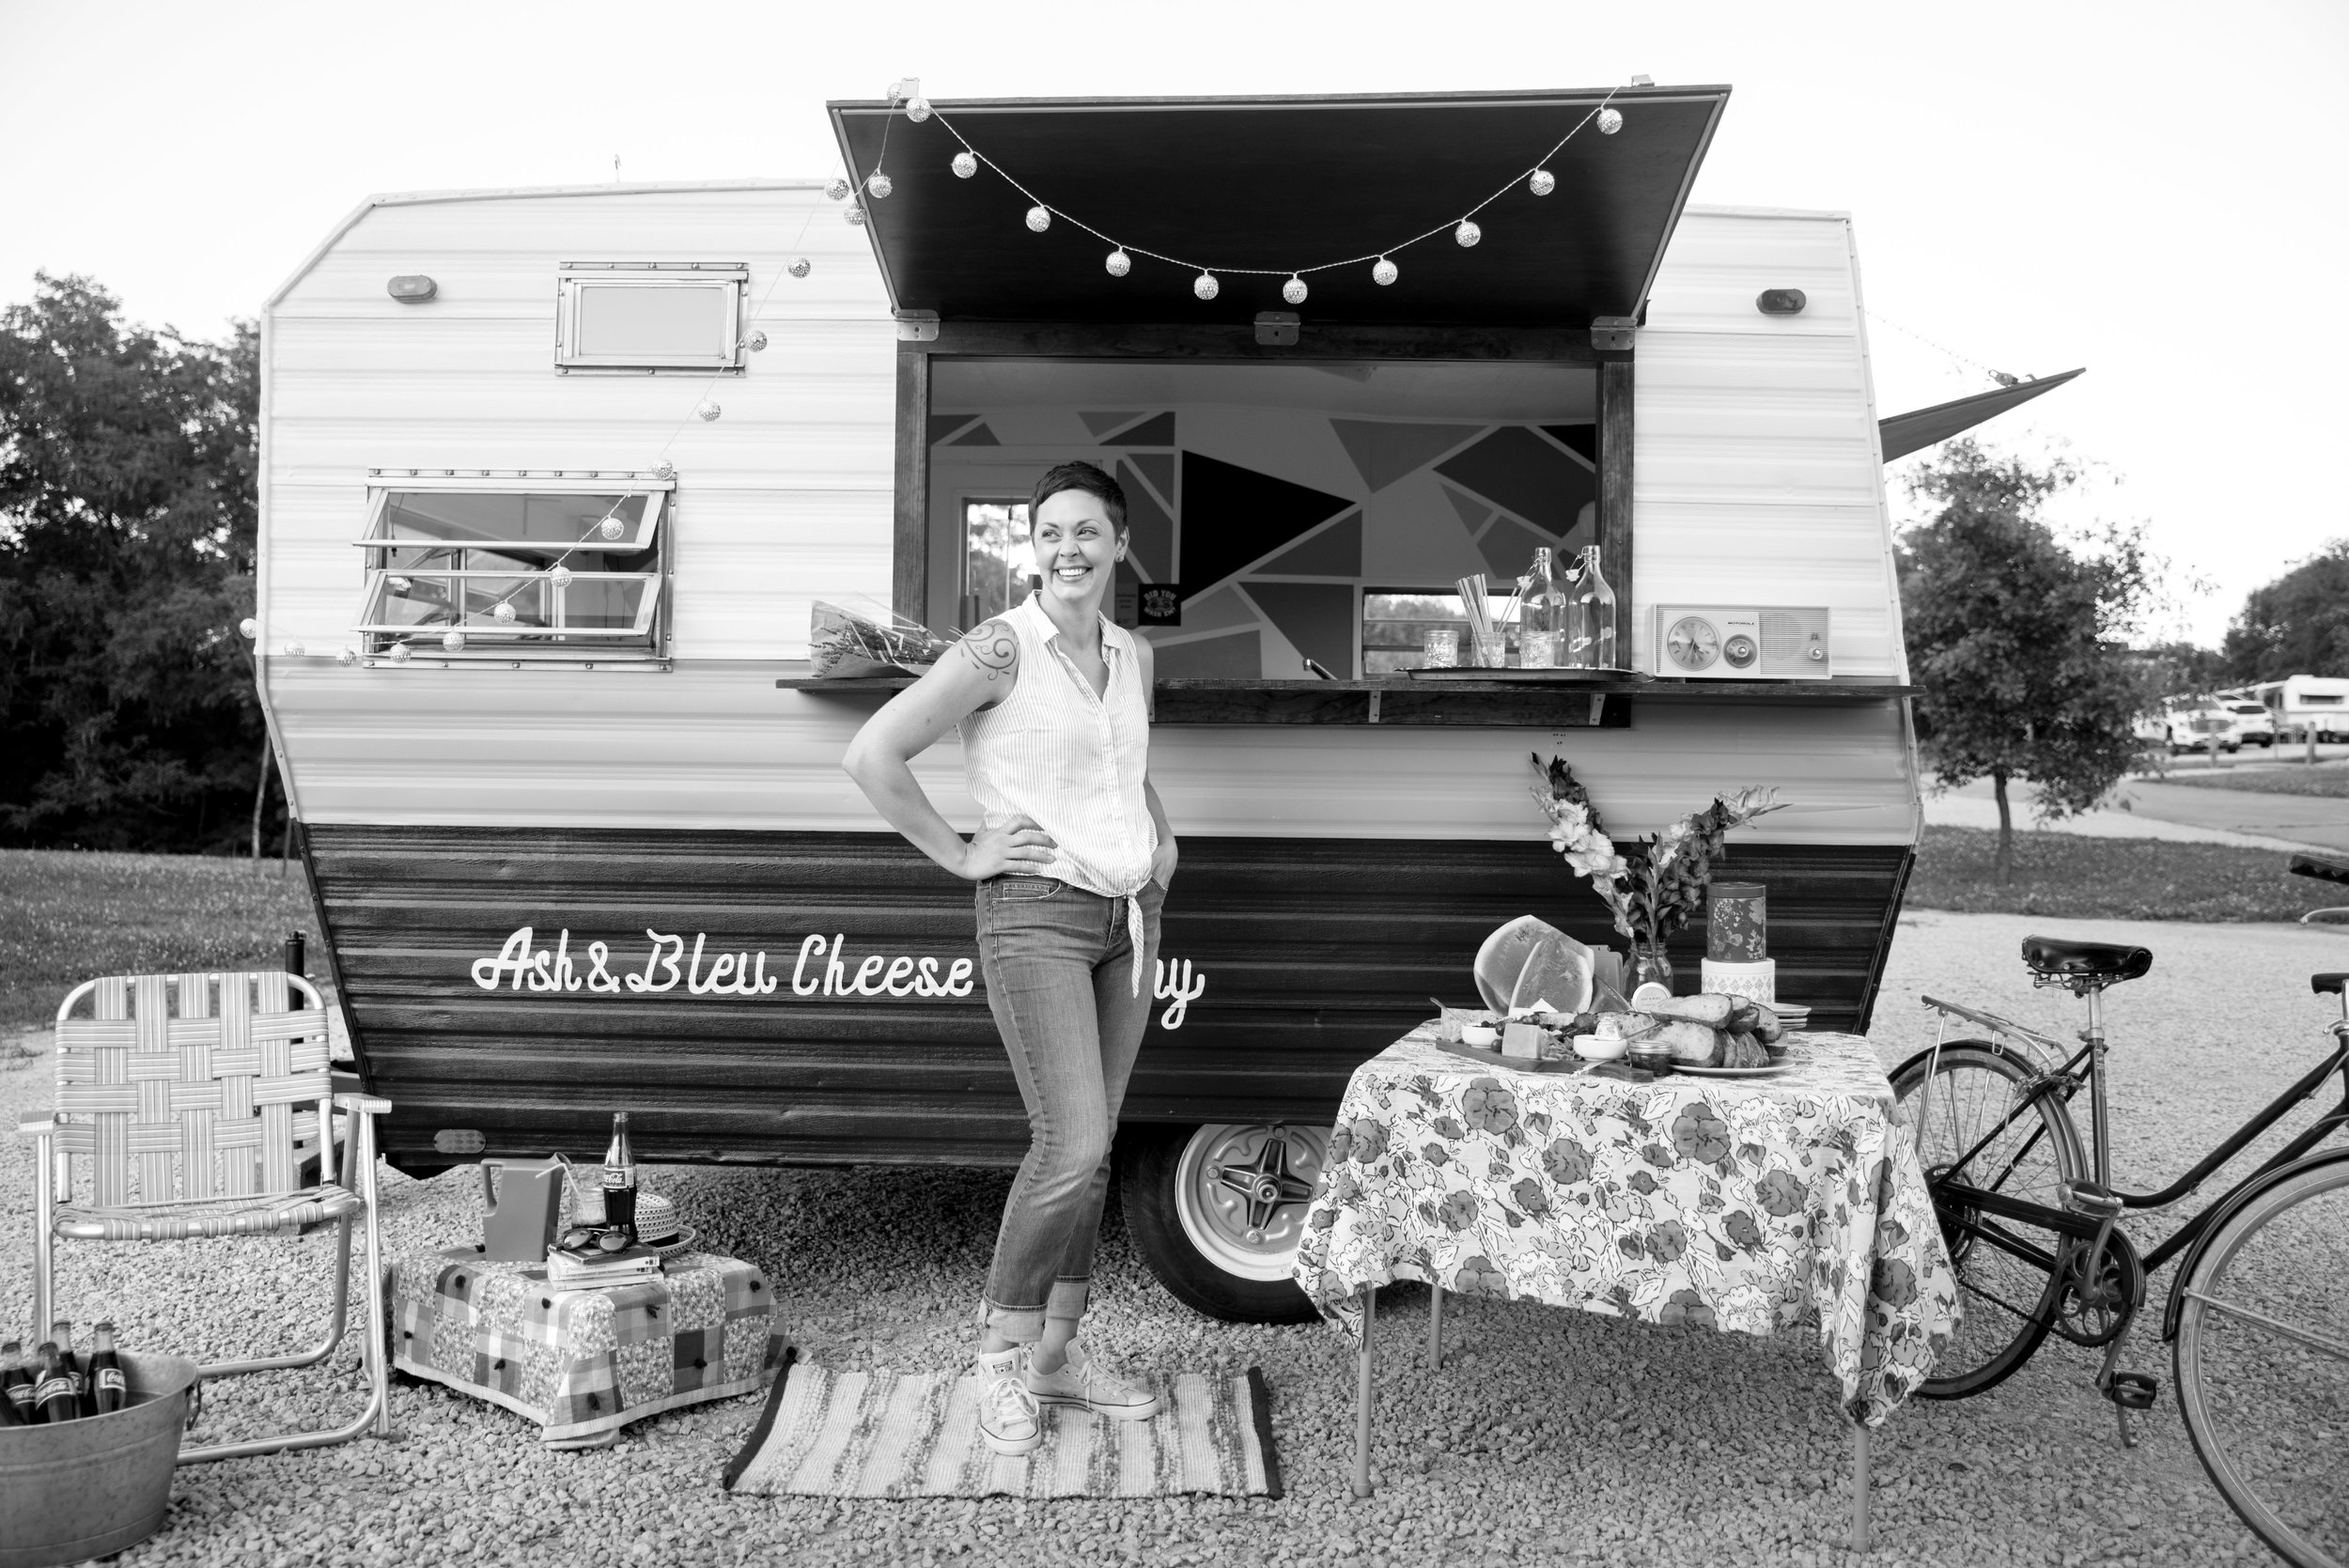 Bethany and Ash and Bleu Cheese Co. camper, June 2017.